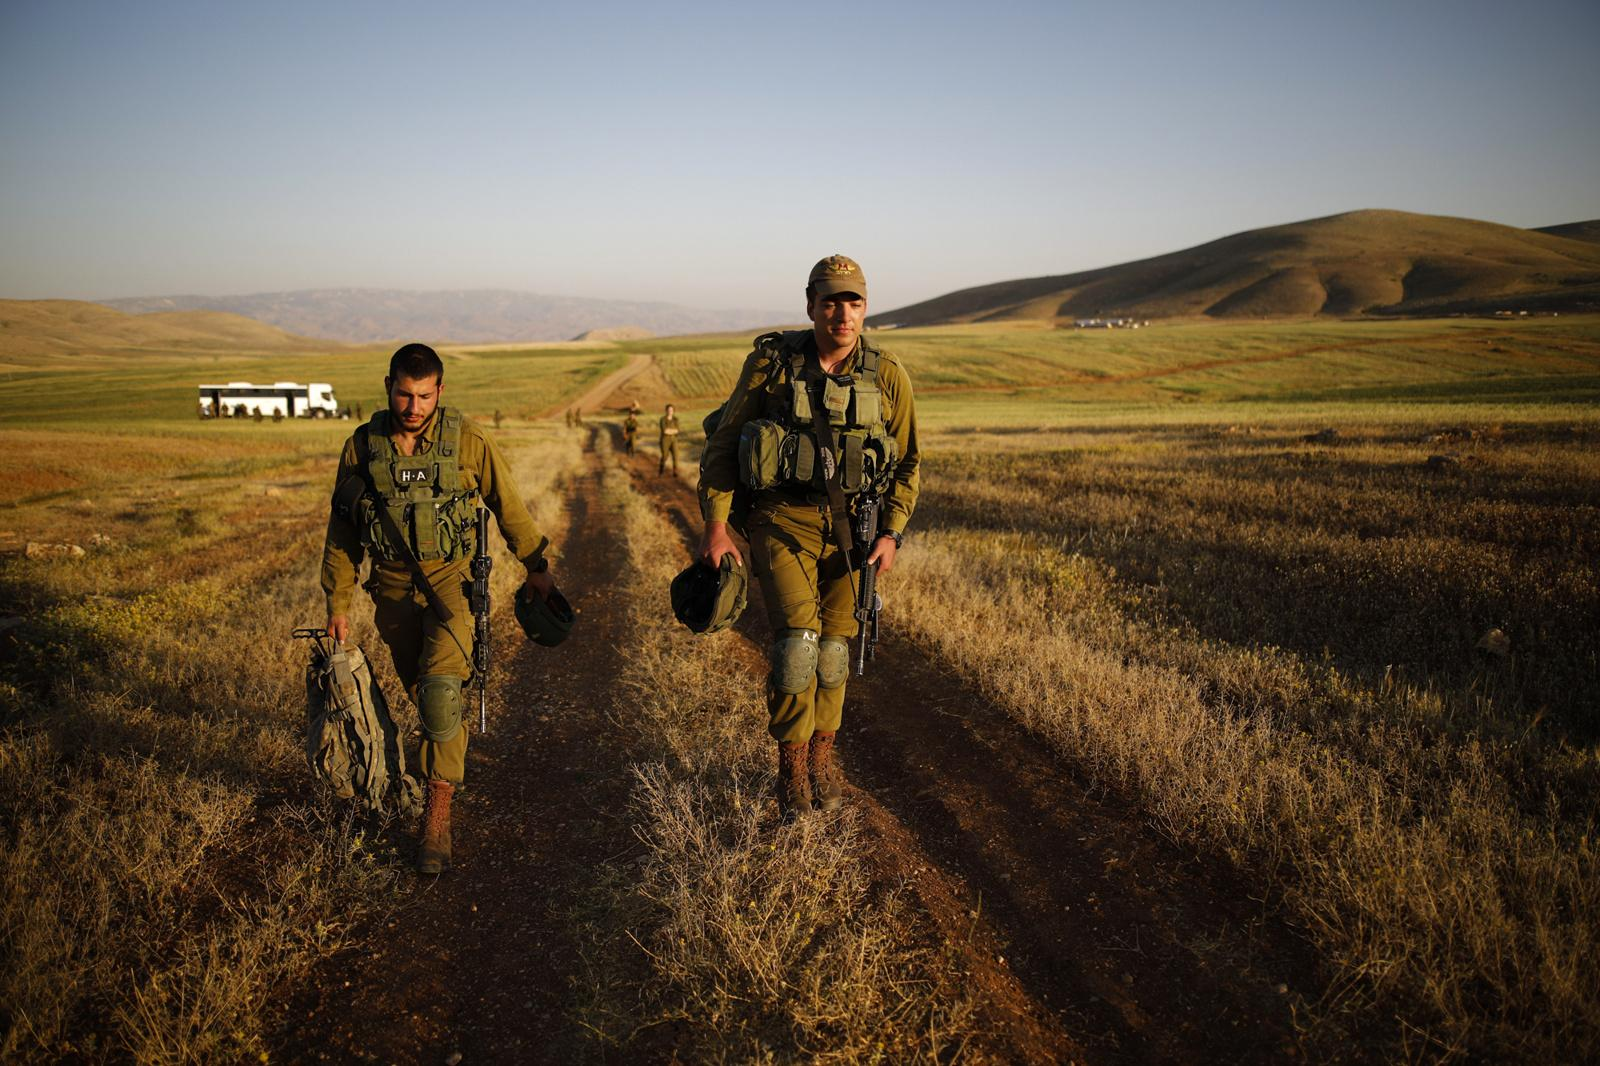 JORDAN VALLEY, ISRAEL - APRIL 05, 2017: Israeli infantry soldiers from the Haruv battalion of the Kfir Brigade are on their way to a counterterrorism drill that takes place in open fields close to the Kfir Brigade base in the Jordan Valley, West Bank, Israel, on April 05, 2017.